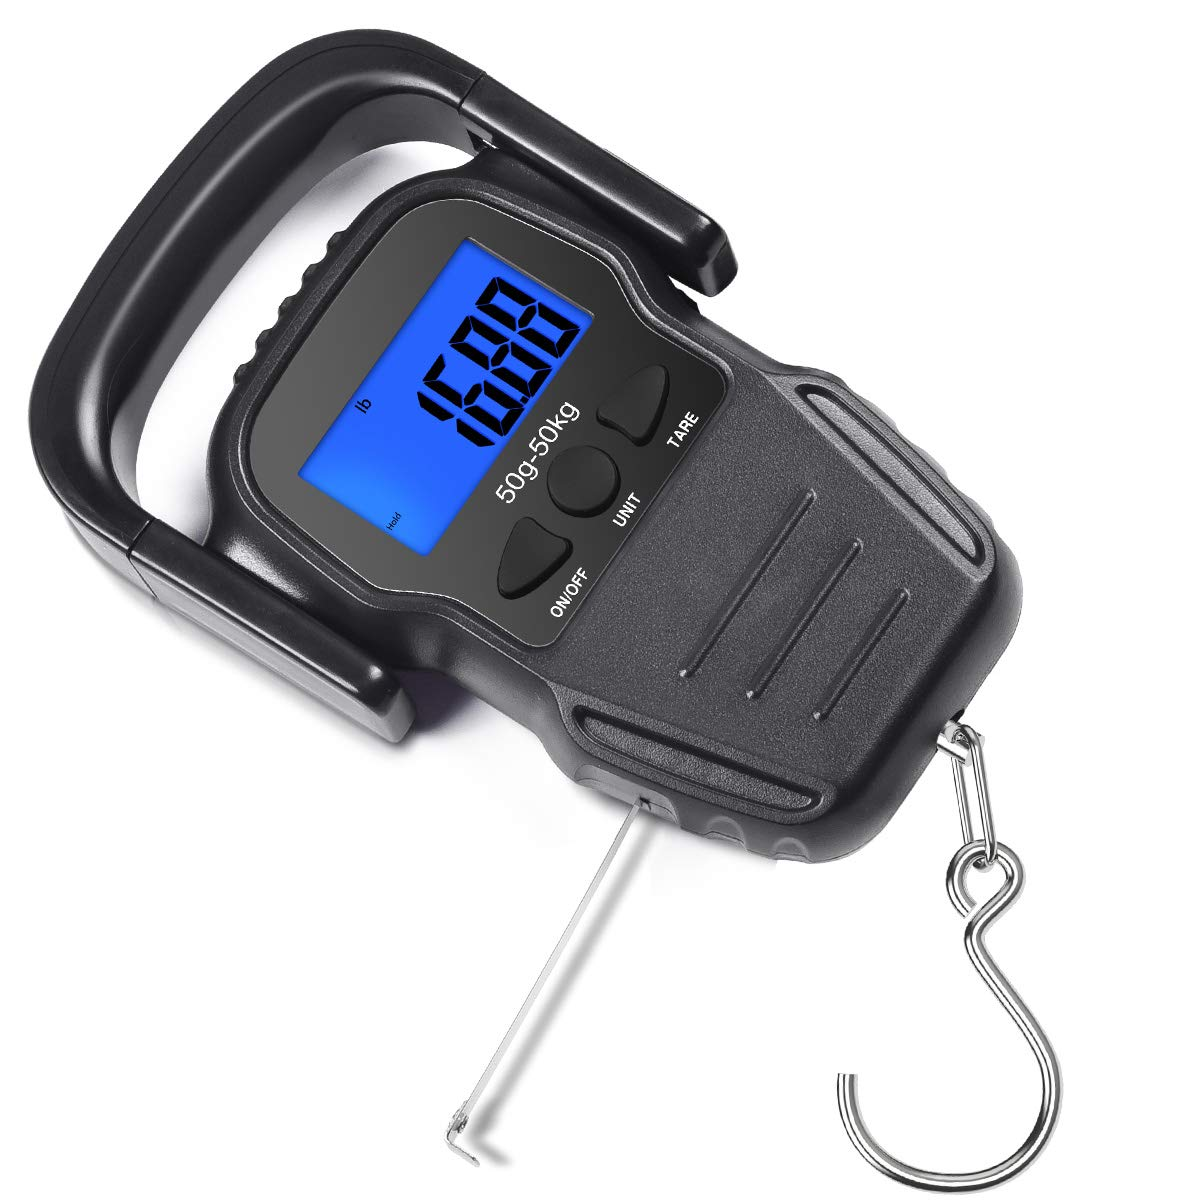 CaseBuy Digital Fish Scale 110lb/50kg, Portable Luggage Weight Scale, Electronic Hanging Hook Scale Fishing Scale with Measuring Tape/Large Backlit LCD Display, Batteries Included by CaseBuy